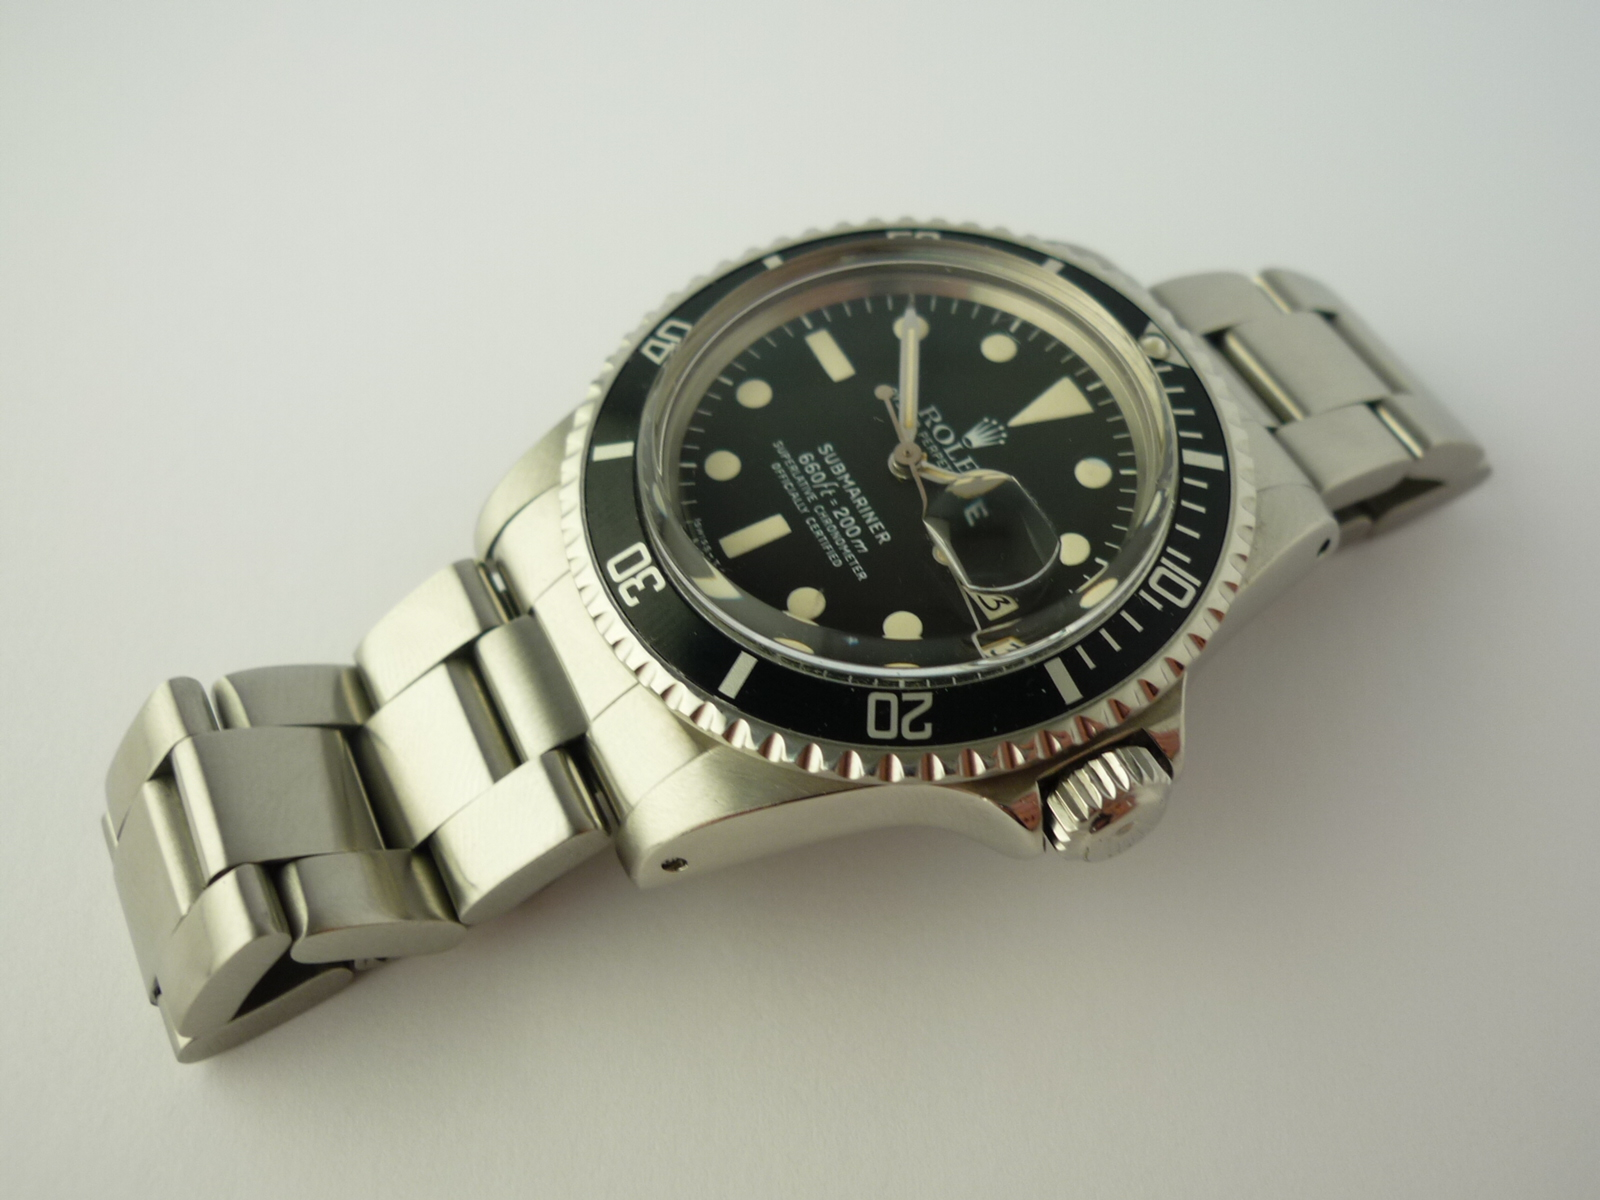 Rolex Submariner watch ref 1680 Box and Papers (1979)